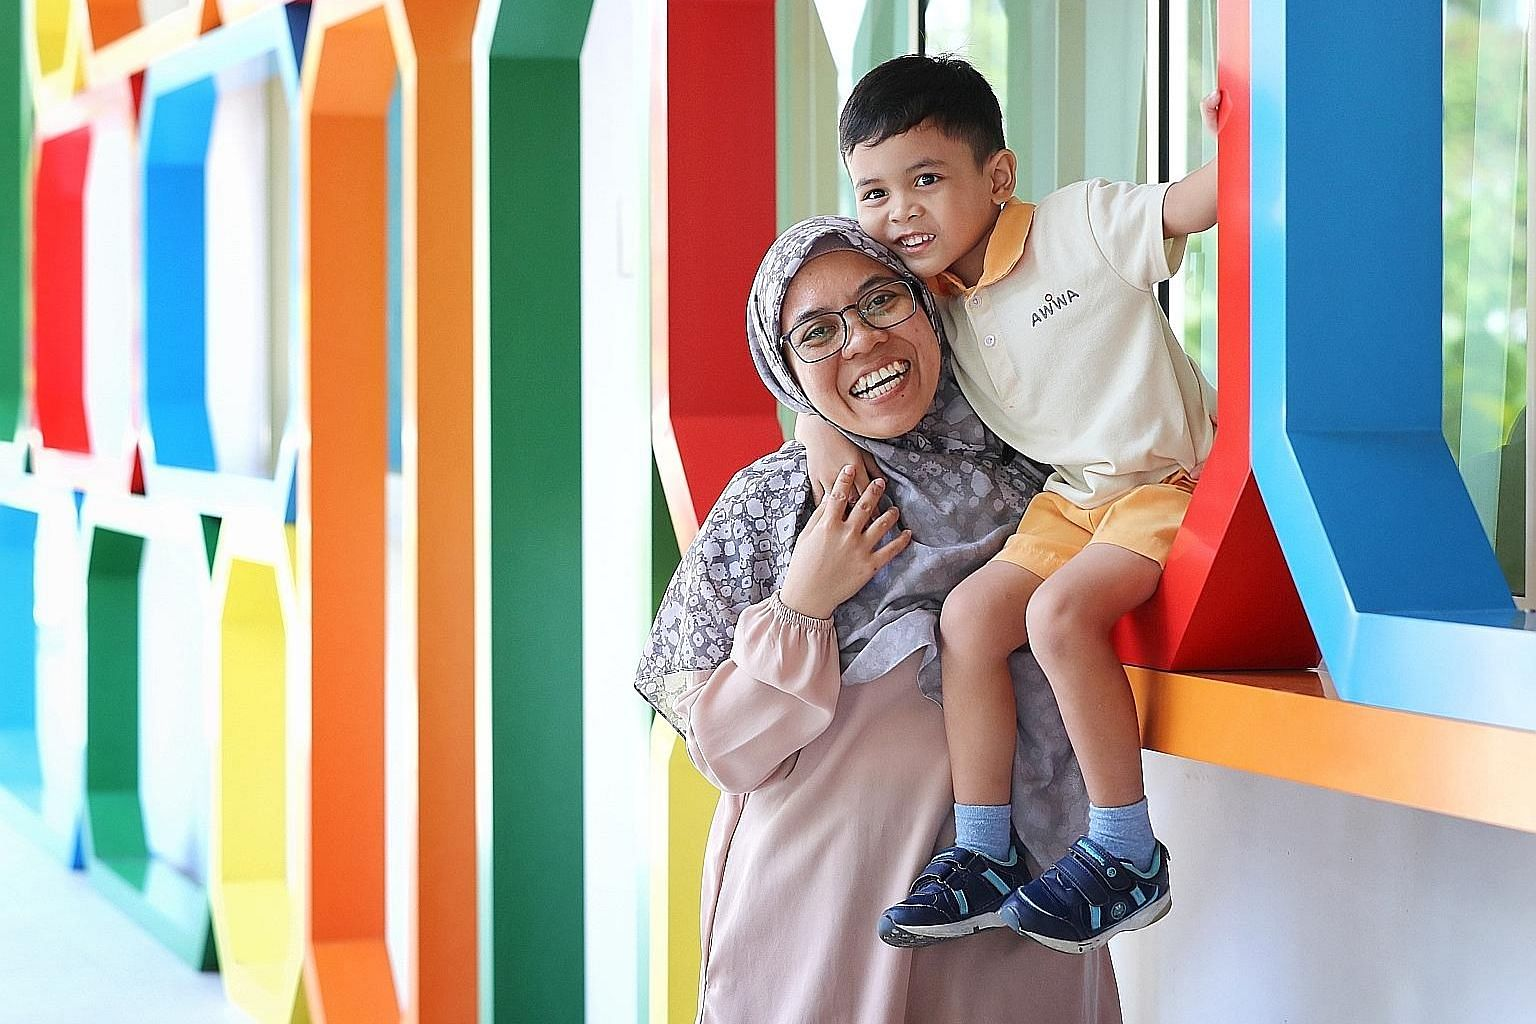 Housewife Shariza Sahari, 42, with her six-year-old son, Aqeel, who has autism. Mother and son go to the Awwa Early Intervention Centre in Fernvale three times a week. At a peer coaching and support session at the centre called Kopi Chat, Madam Shari